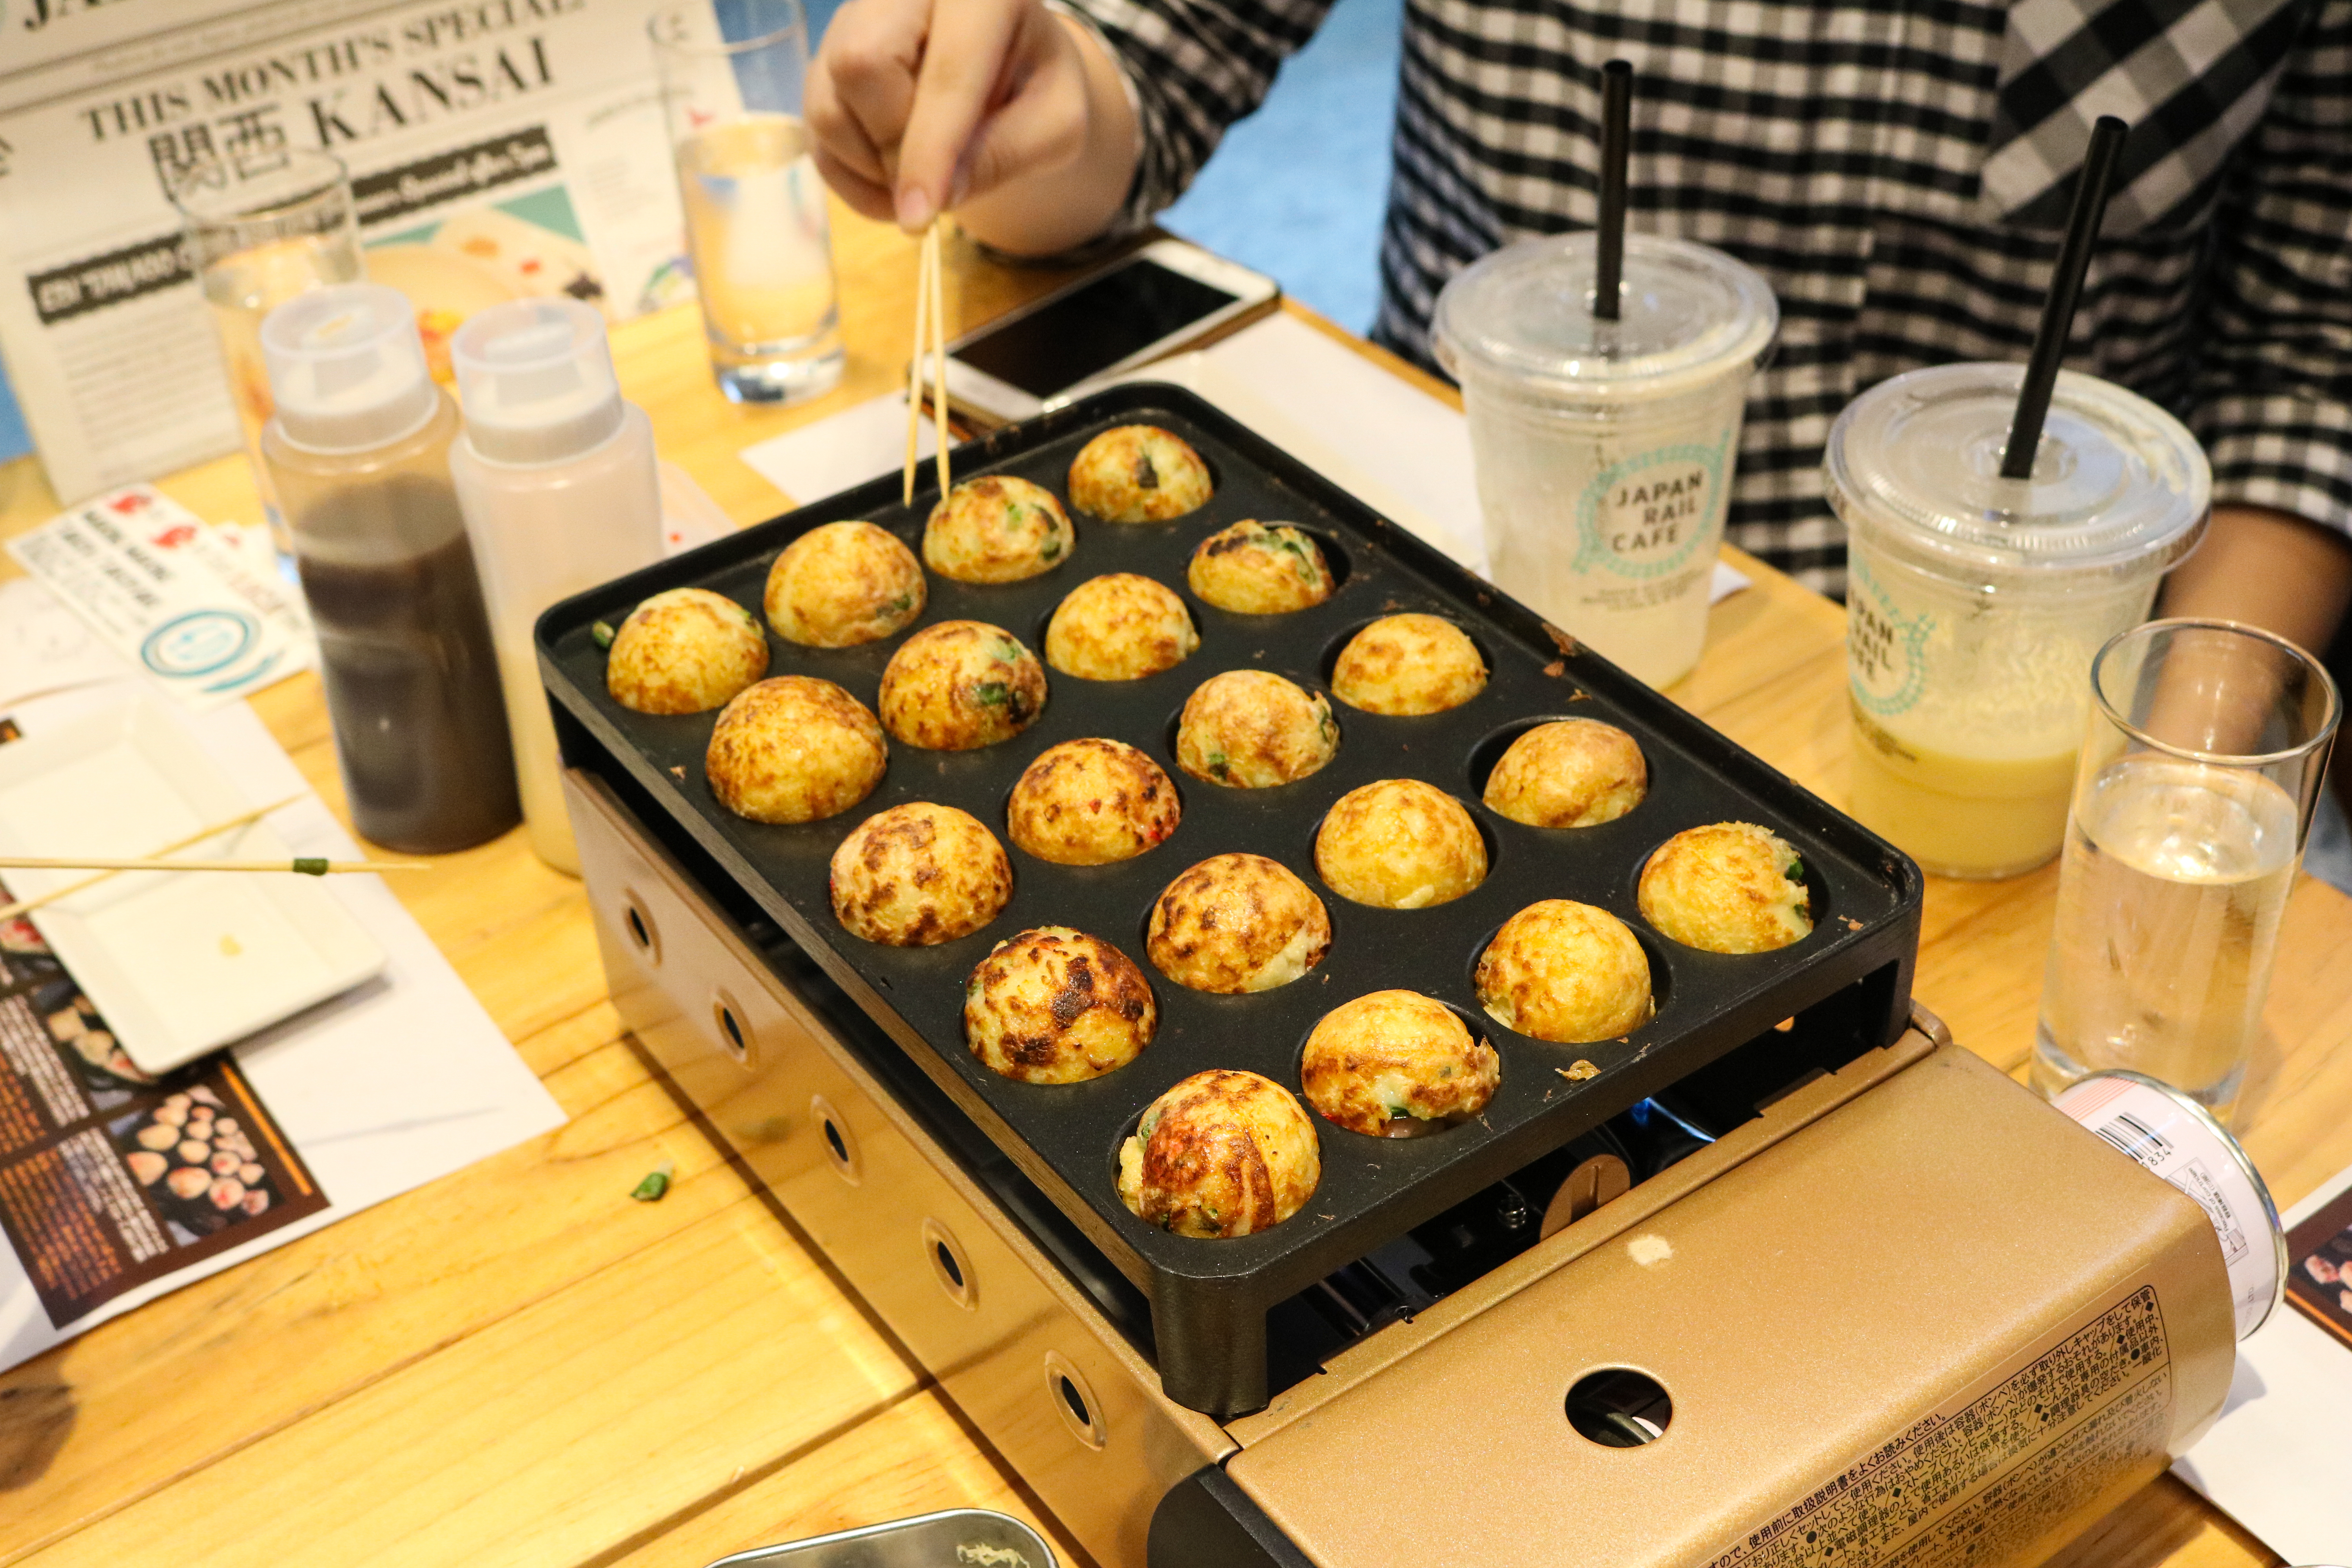 Perfectly round takoyaki! Looks so yummy!